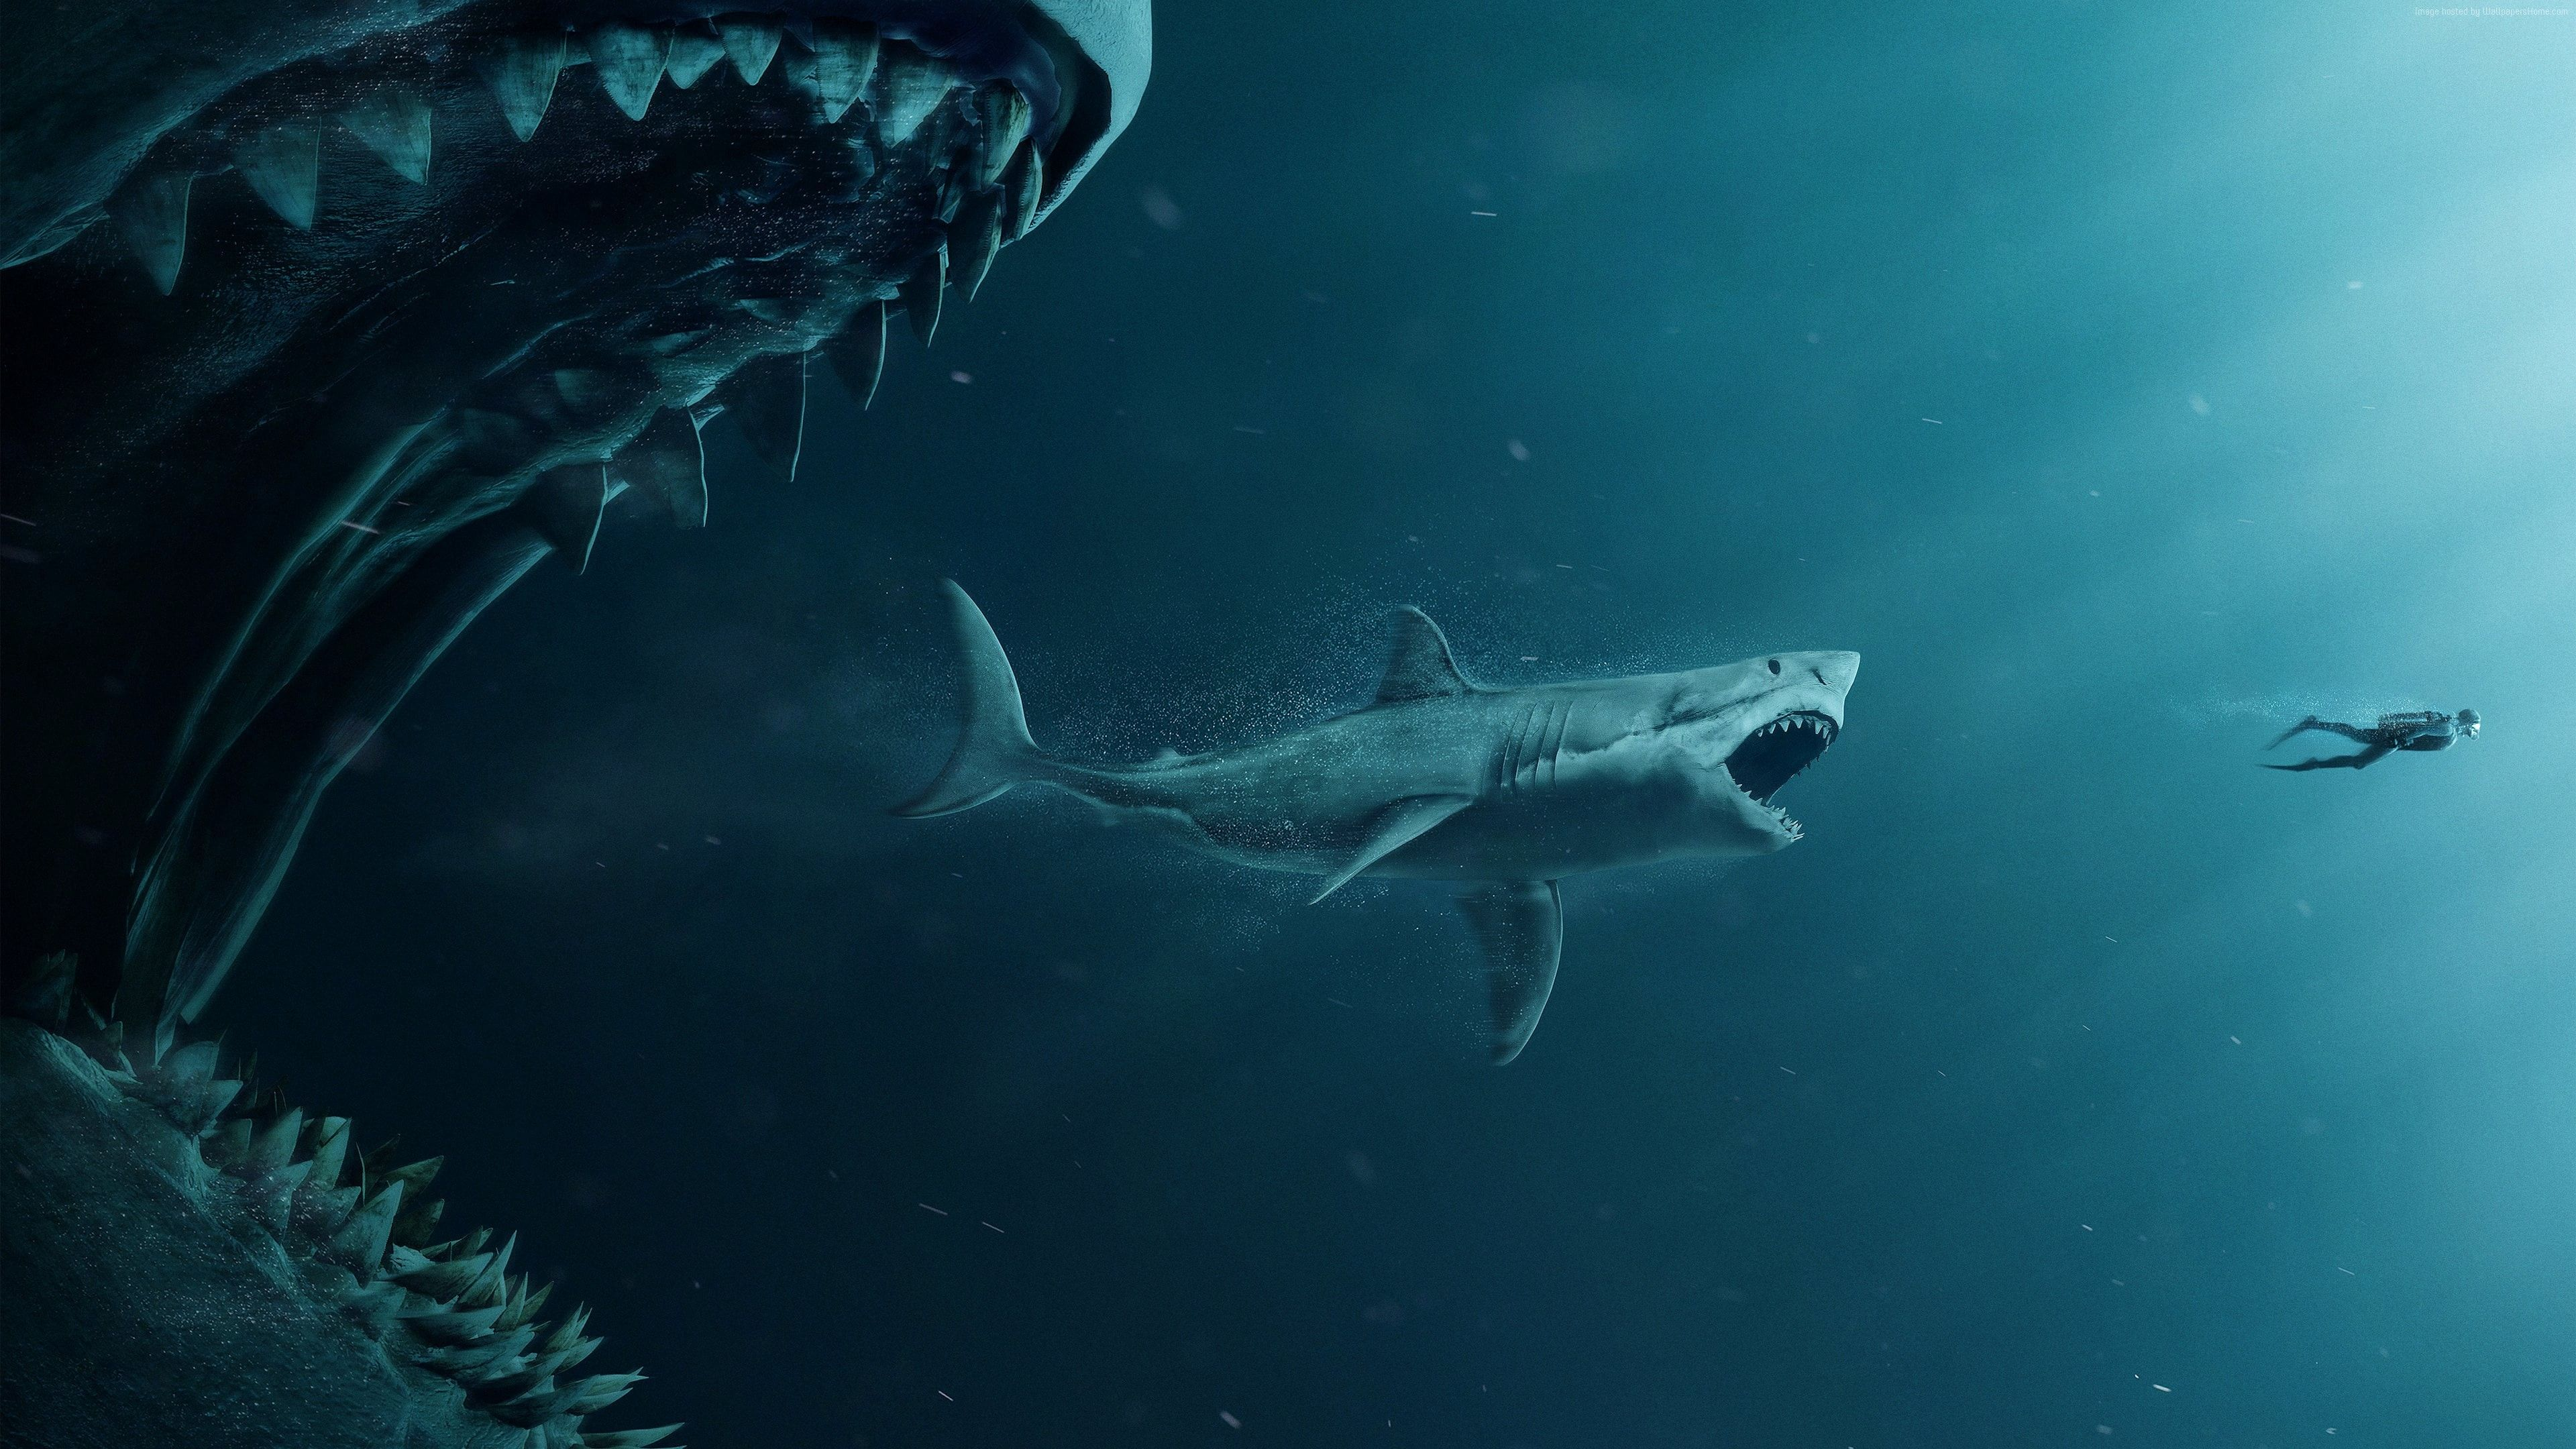 Wallpaper The Meg, shark, diver, 4K, Movies https//www